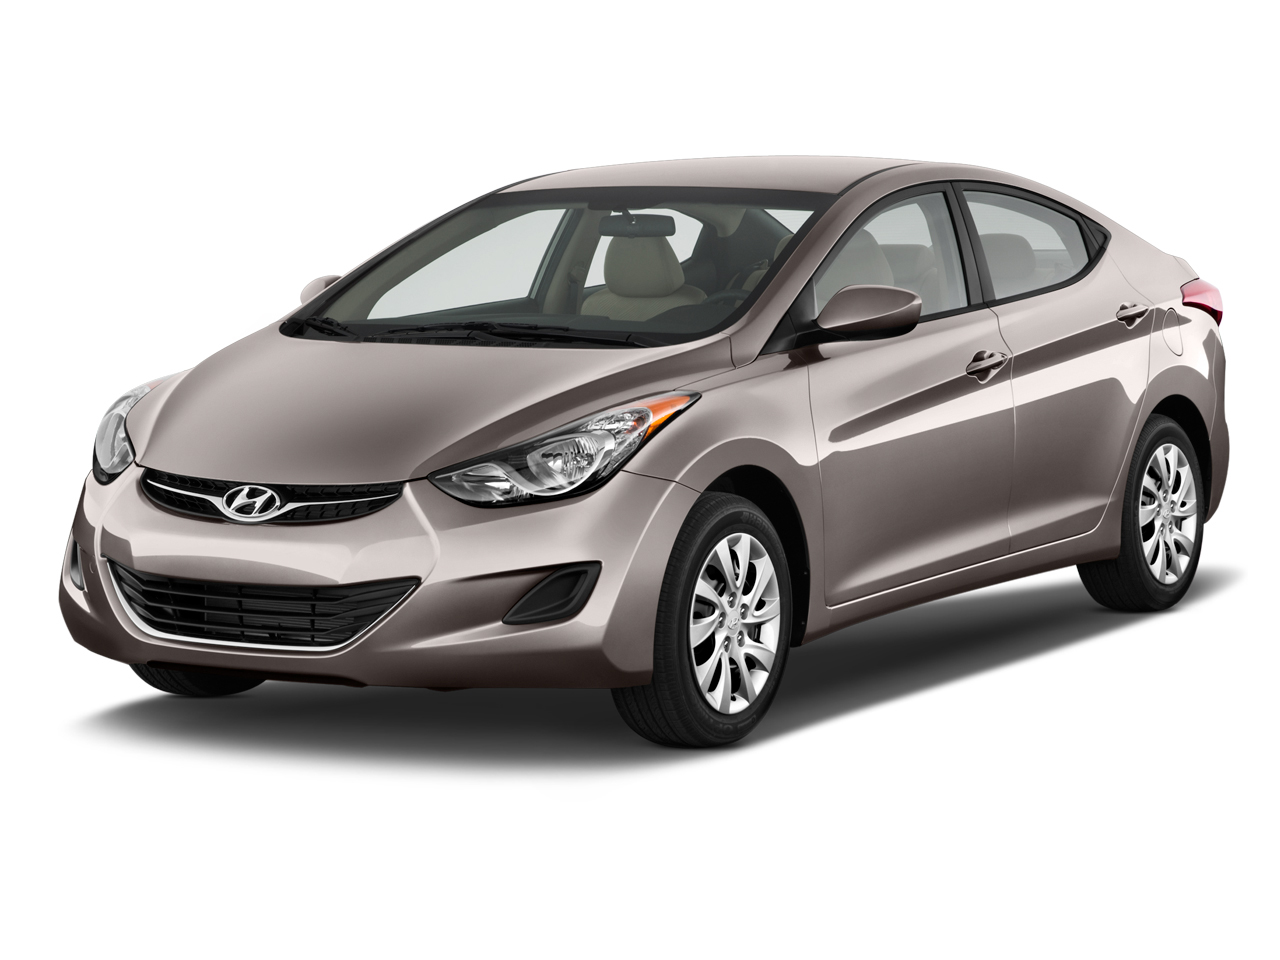 2012 Hyundai Elantra Reviews Amp Test Drives Green Car Reports